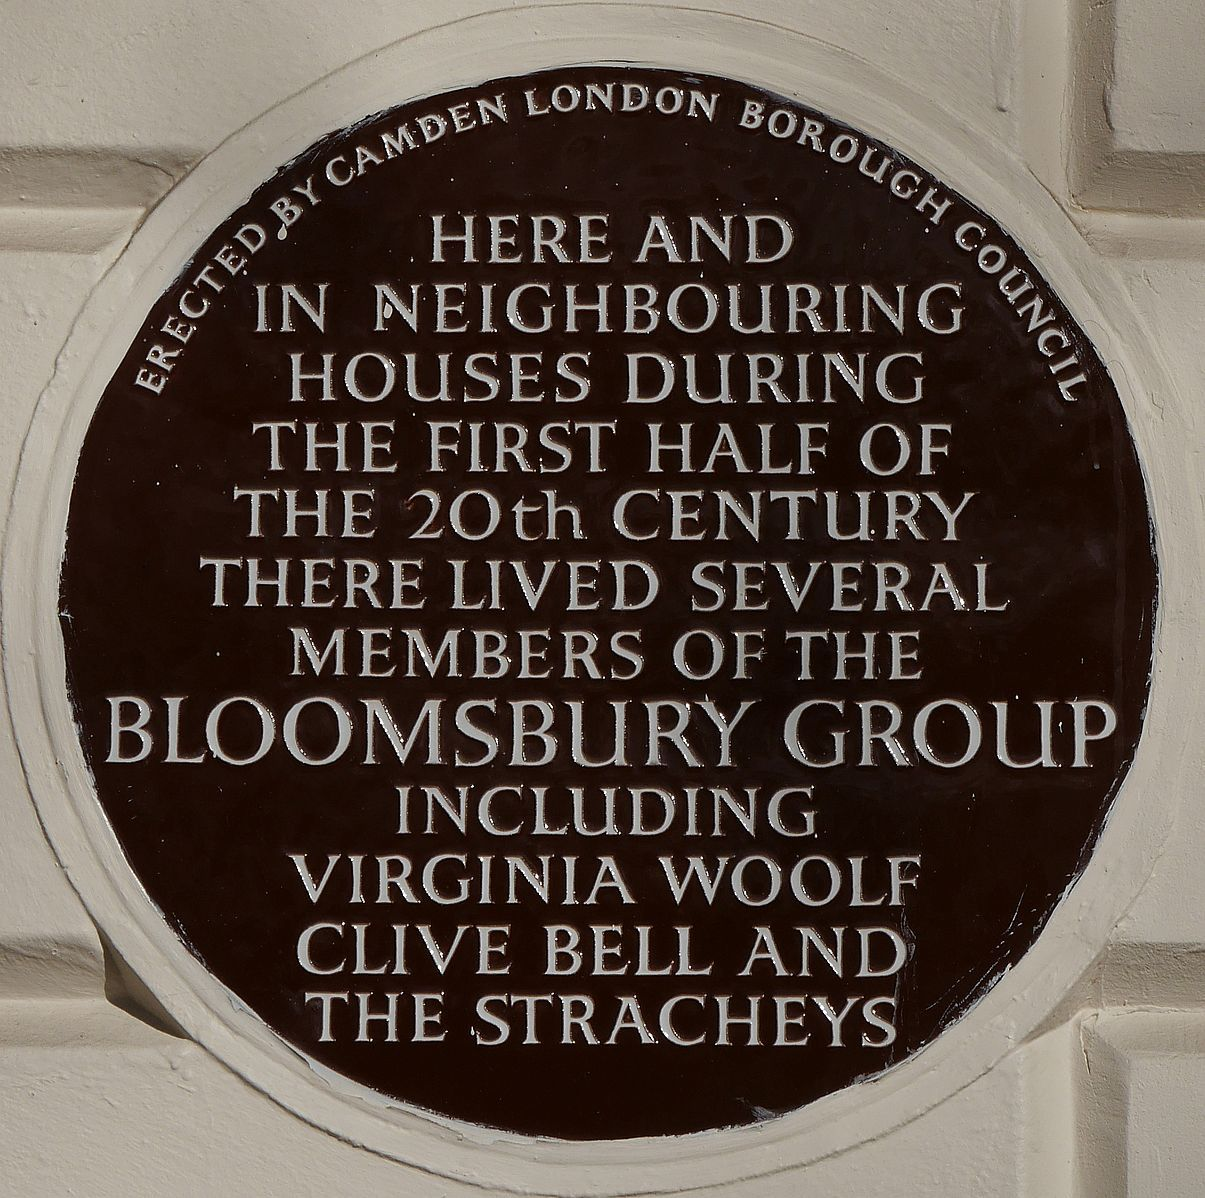 Bloomsbury Group